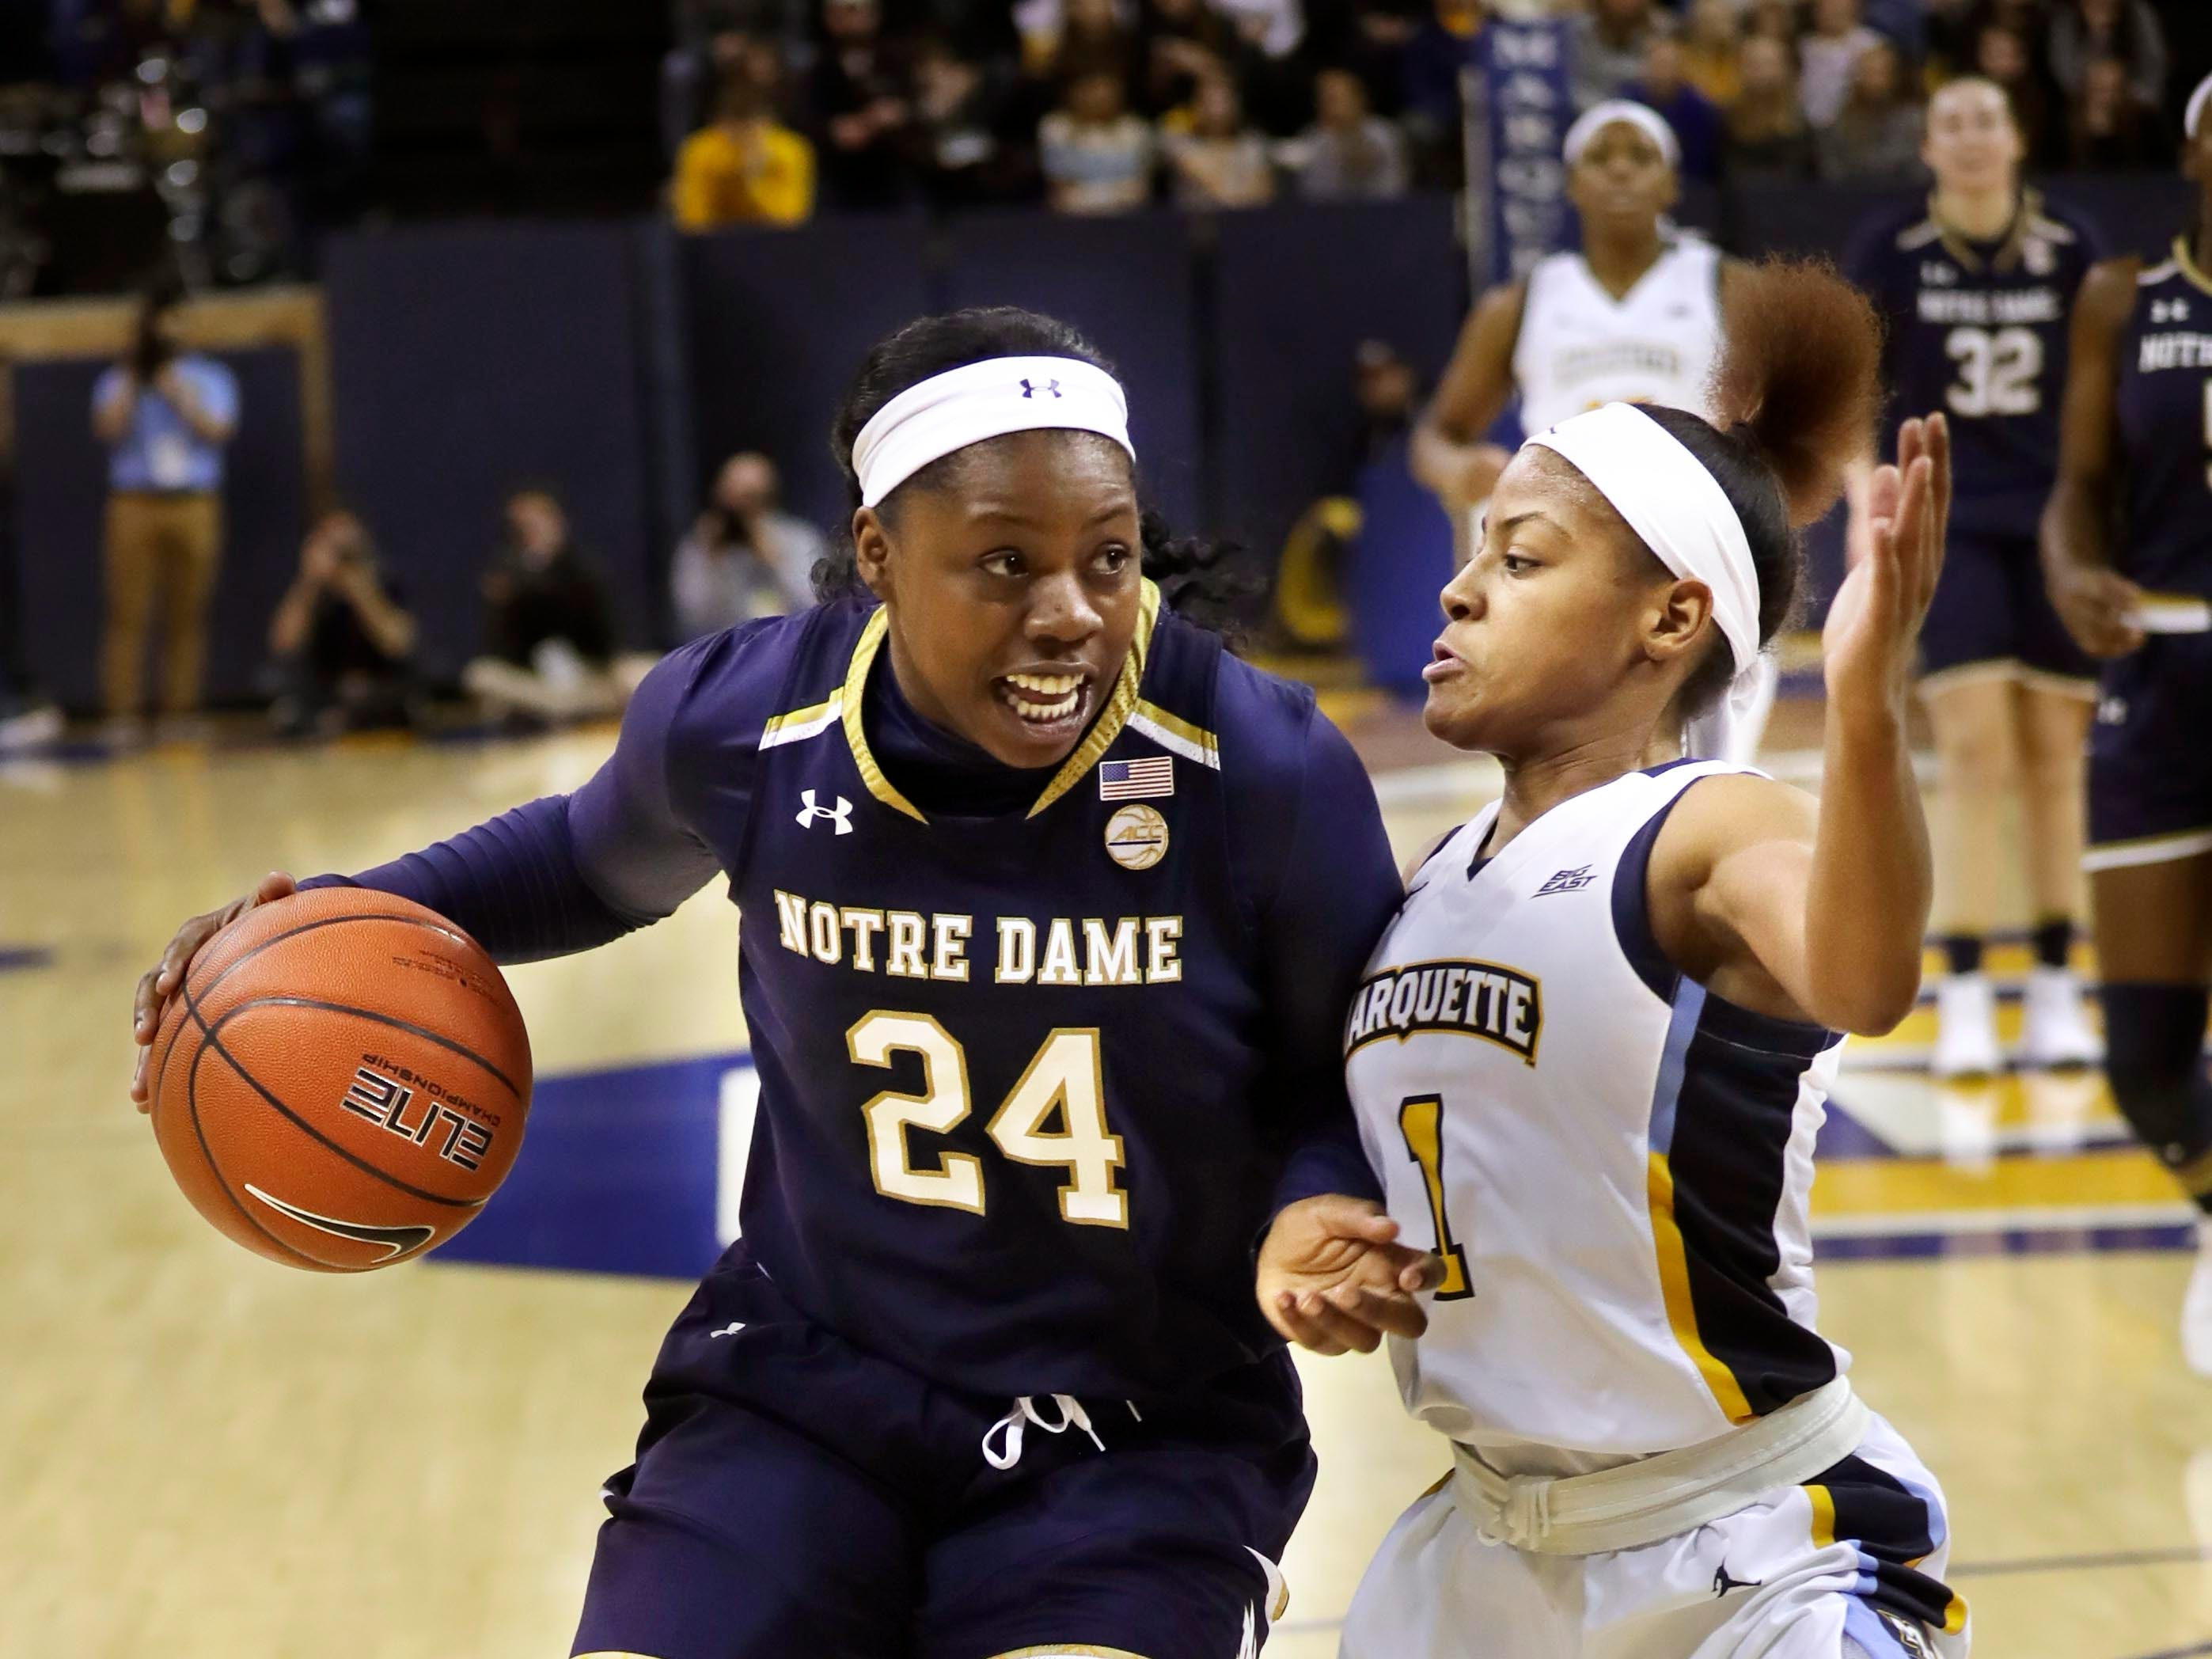 Notre Dame Fighting Irish guard Arike Ogunbowale  drives past  Marquette Golden Eagles guard Danielle King.